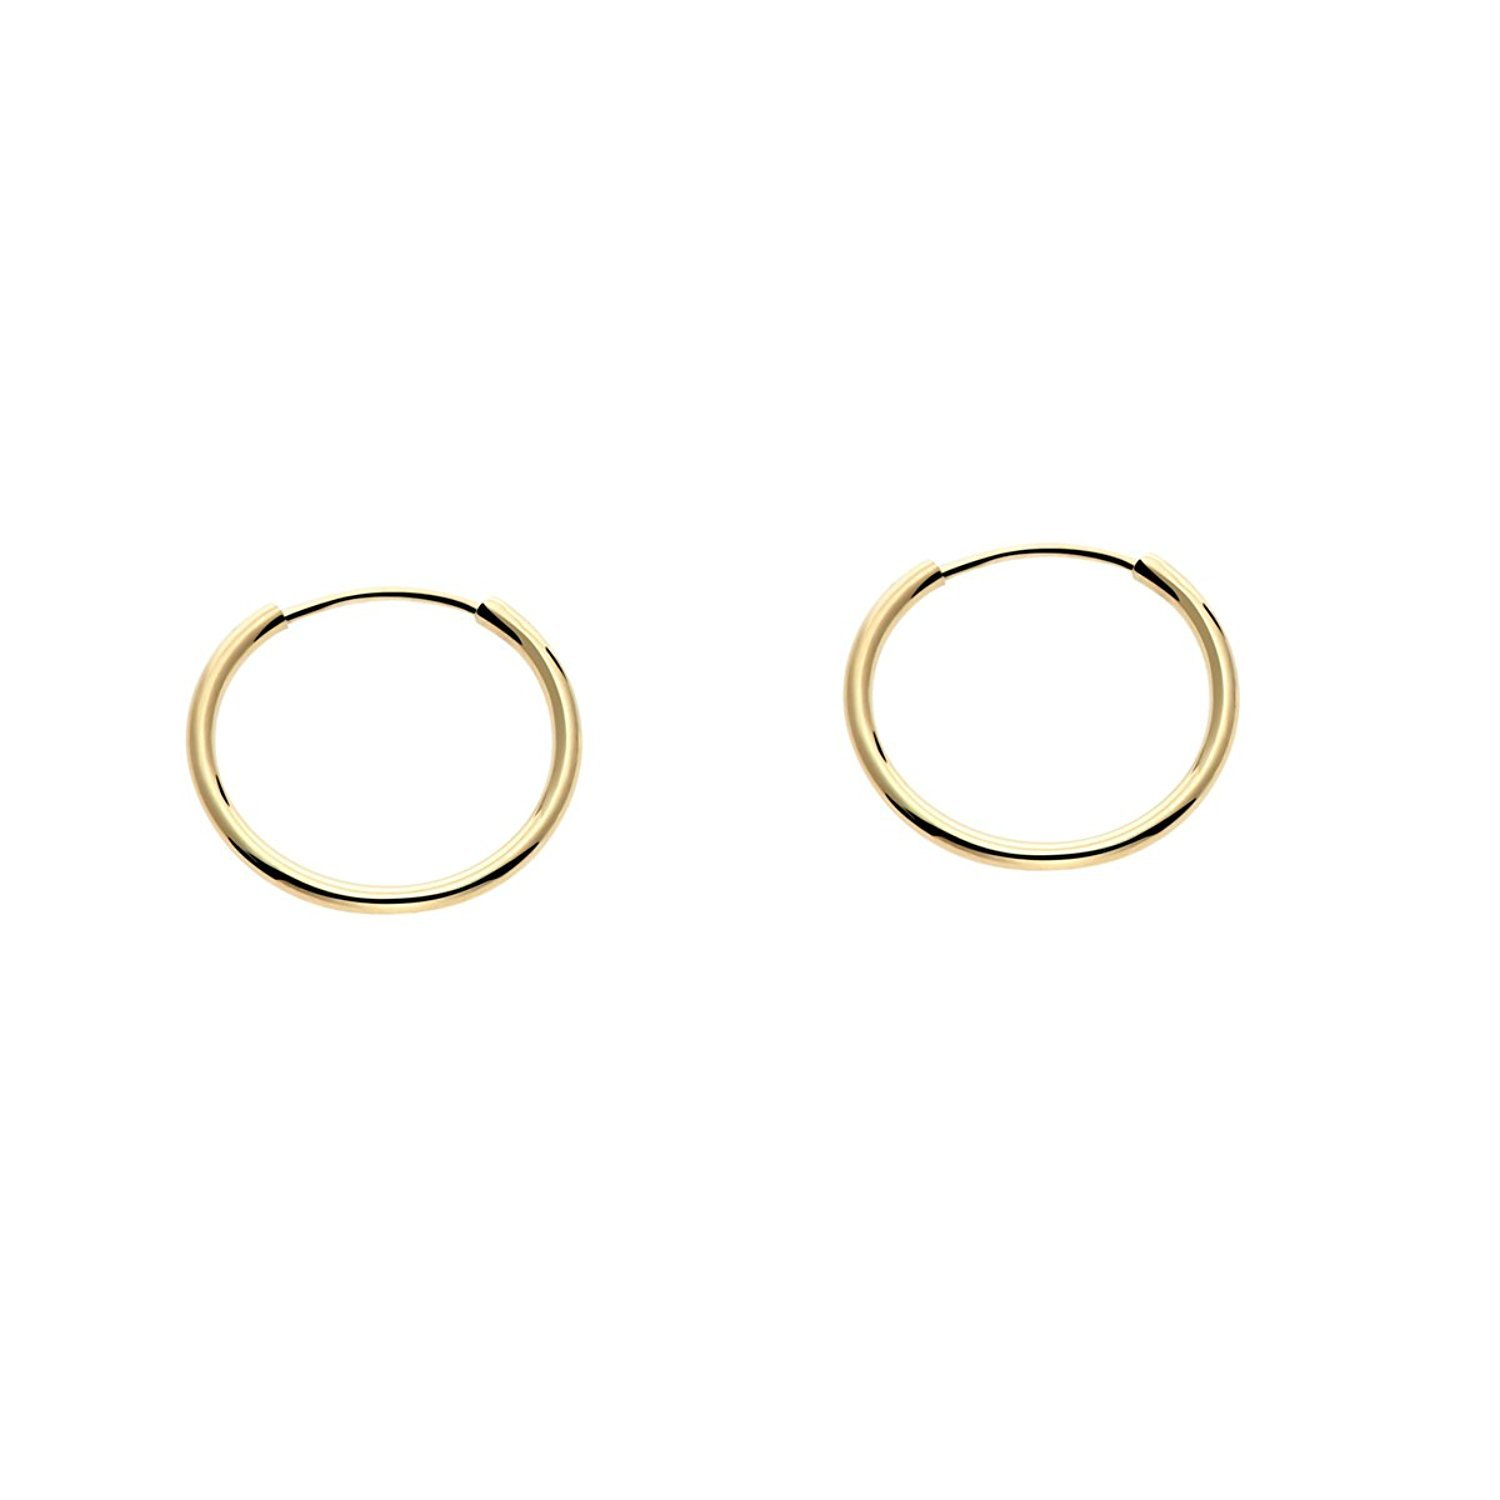 14k Yellow Gold Round Flexible Thin Continuous Endless Hoop Earrings, Unisex (12mm, yellow-gold)